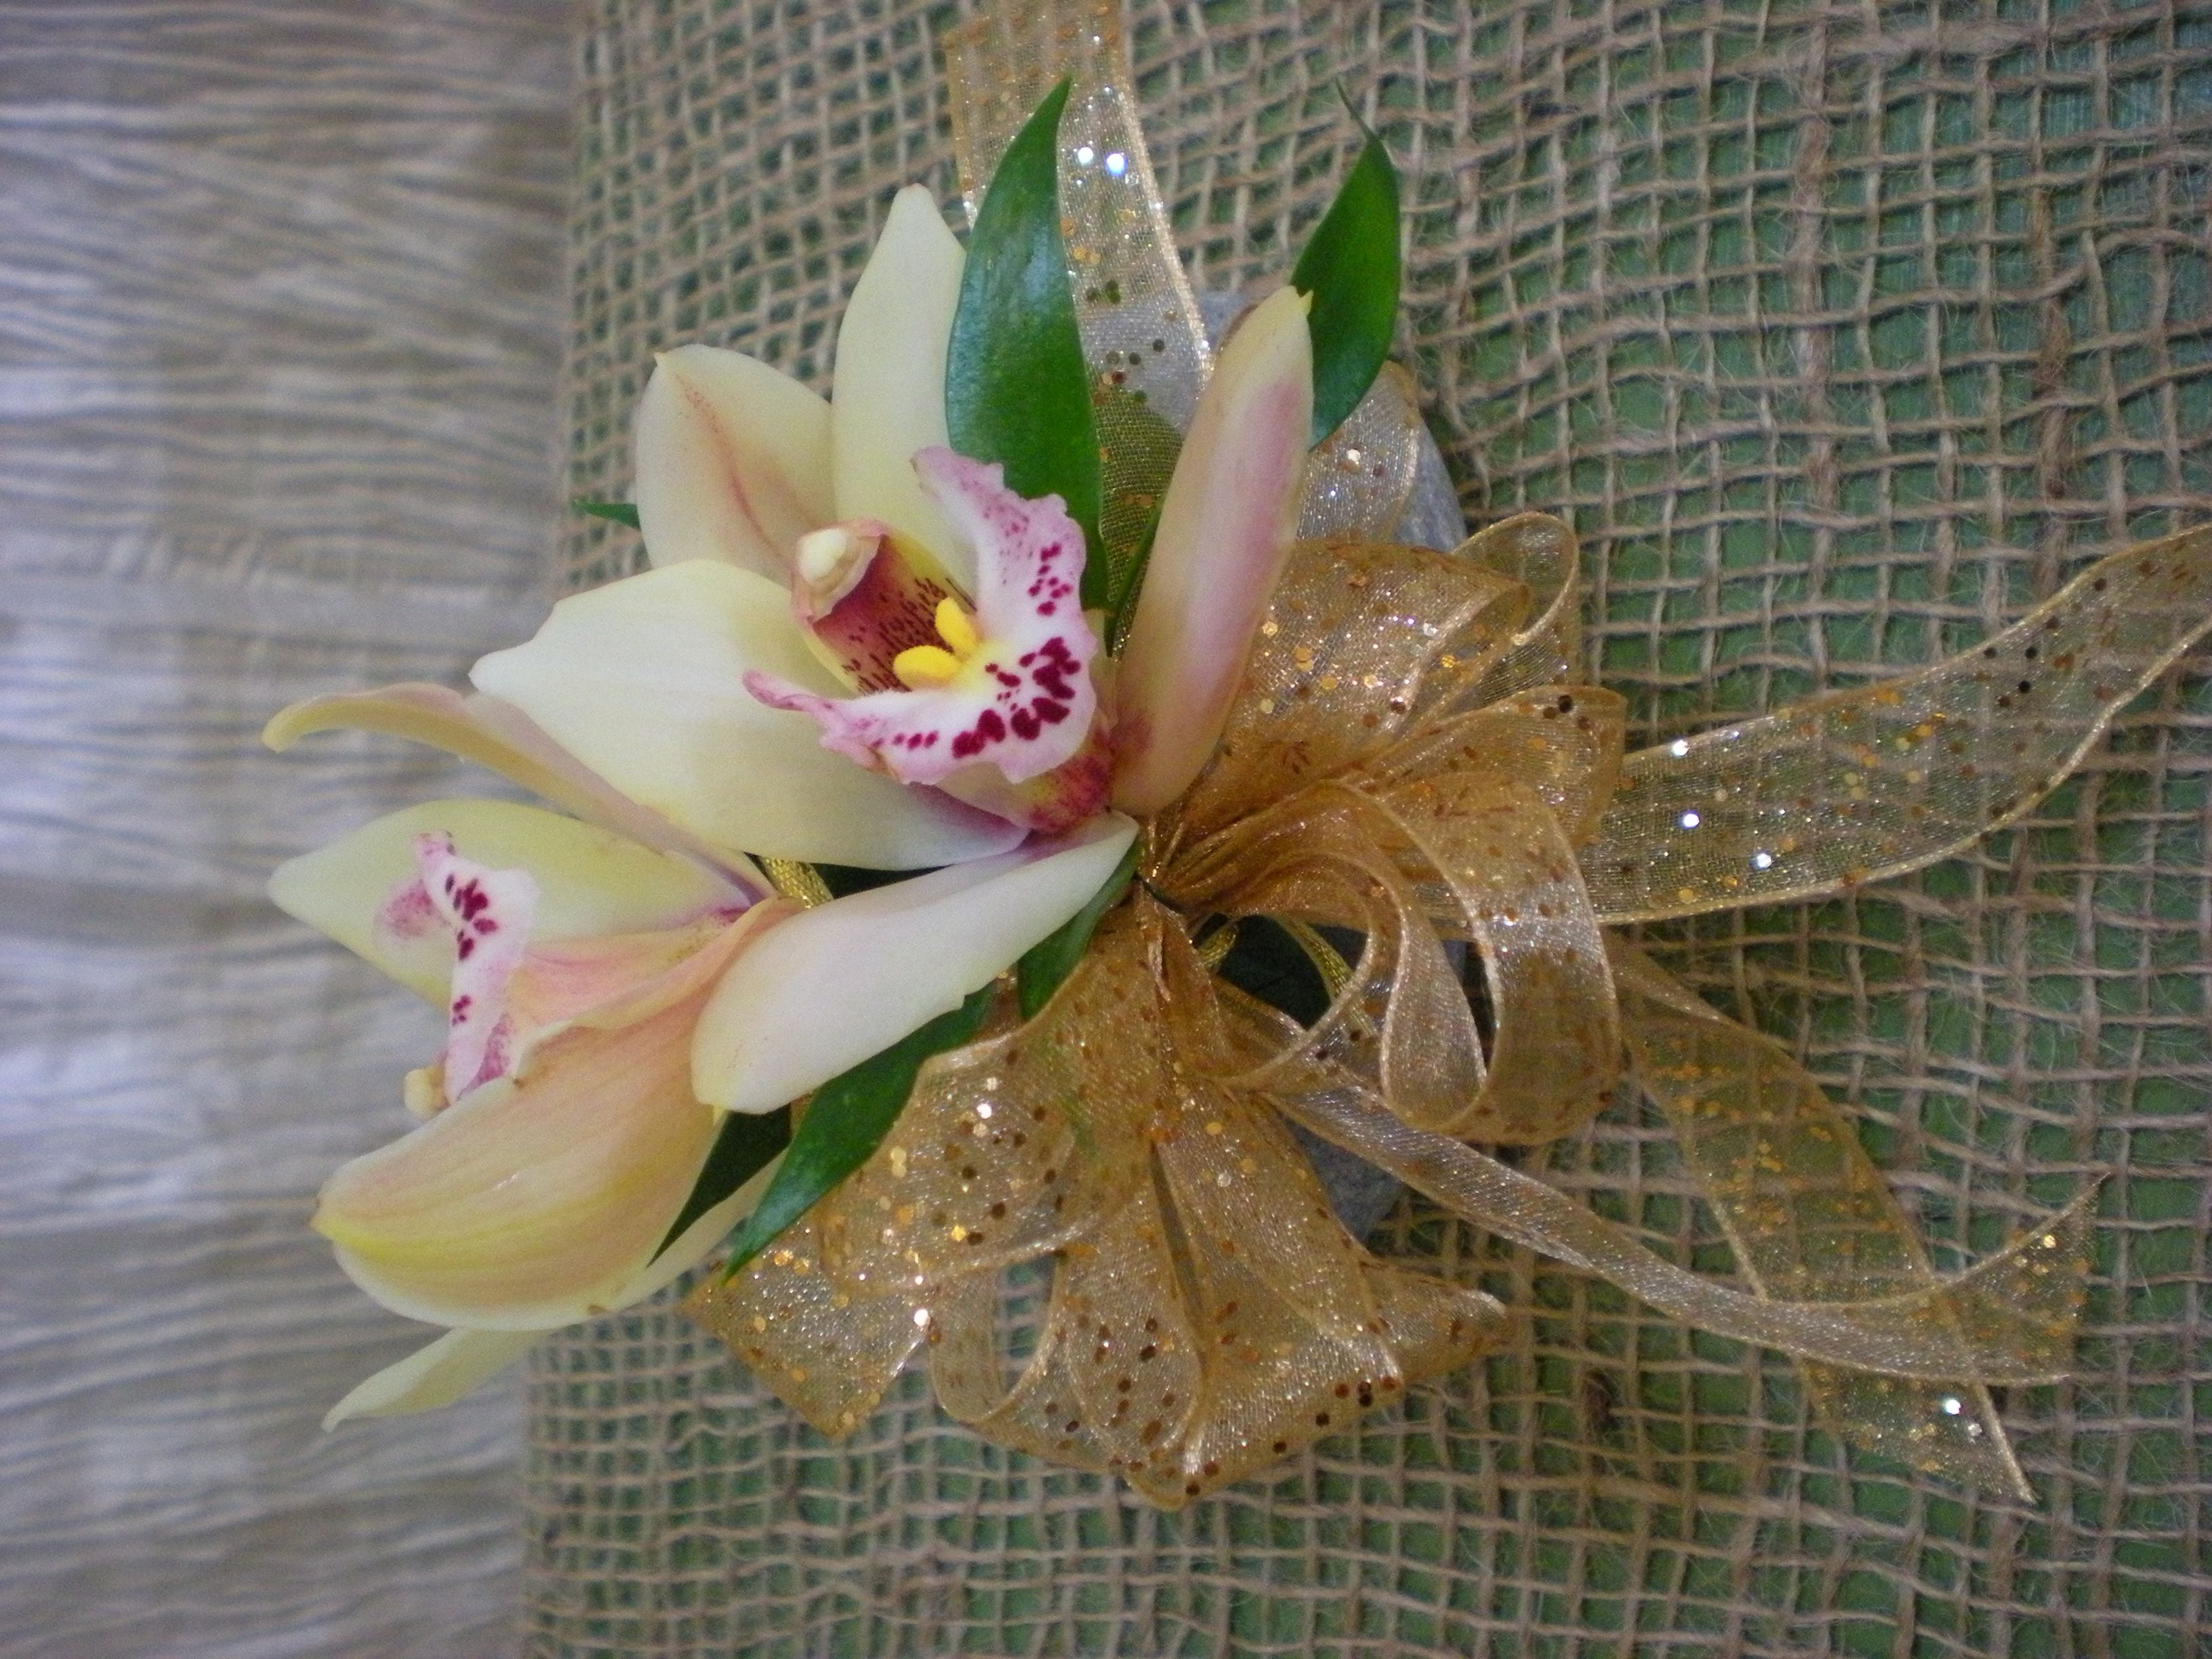 Cymbidium Orchid Wrist Corsages: What Color Corsage For Burgundy Dress